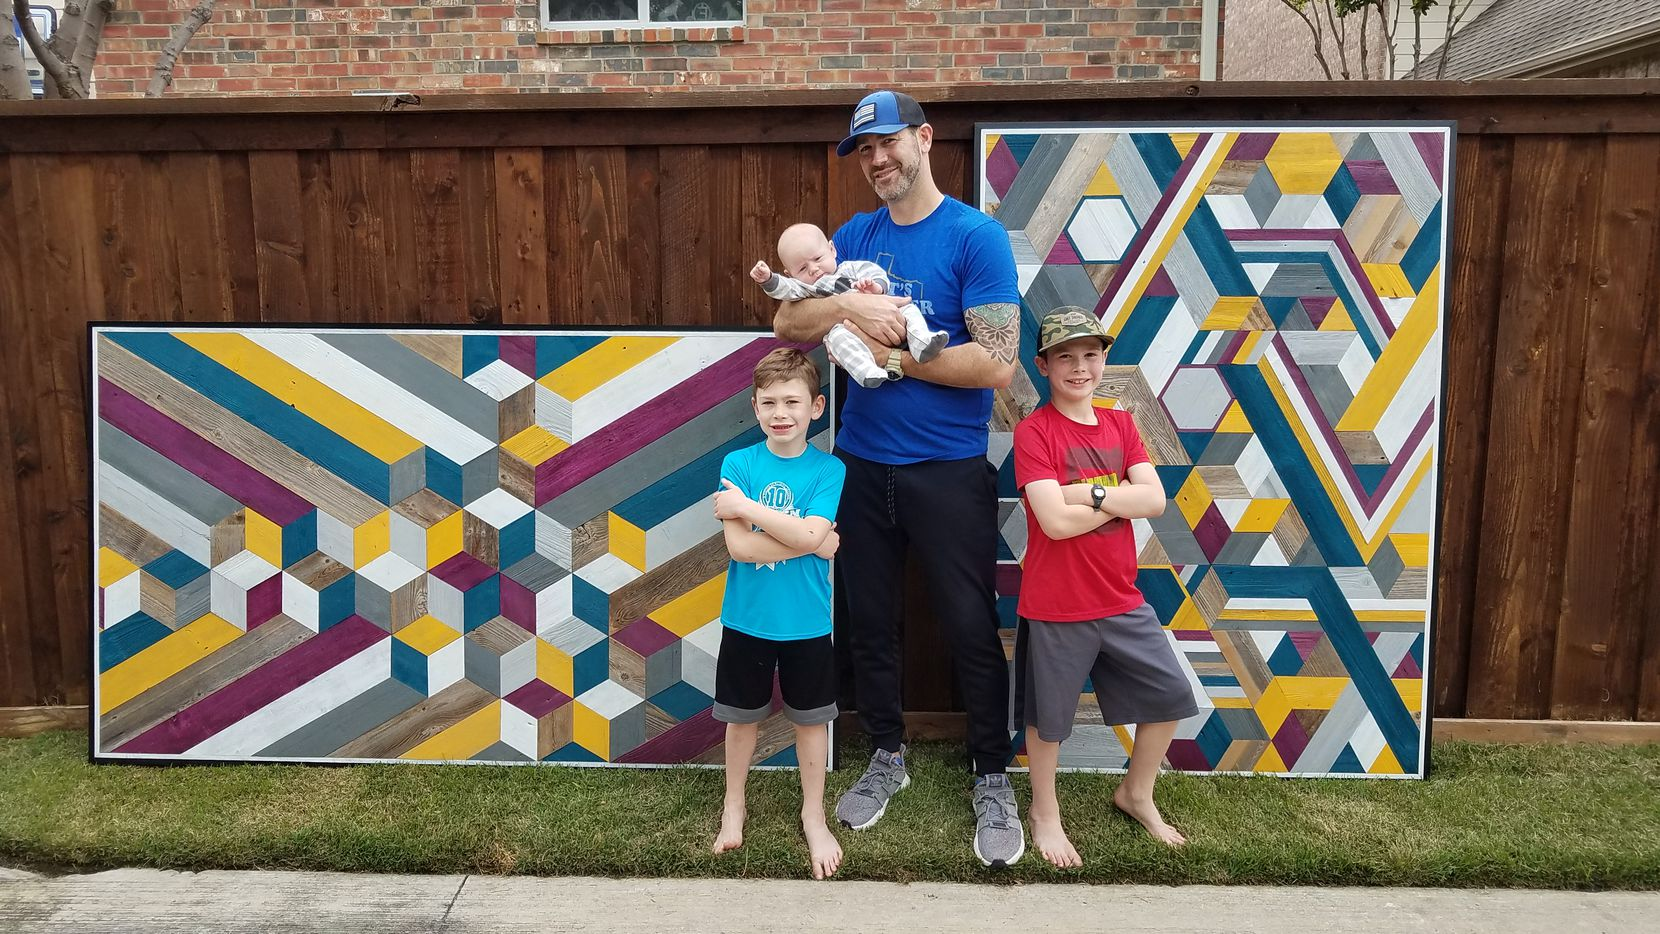 Ryan Ekmark, 41, poses with his boys  — Caleb,10, Carter, 7, and Cayson 7 months — in front of his artwork.